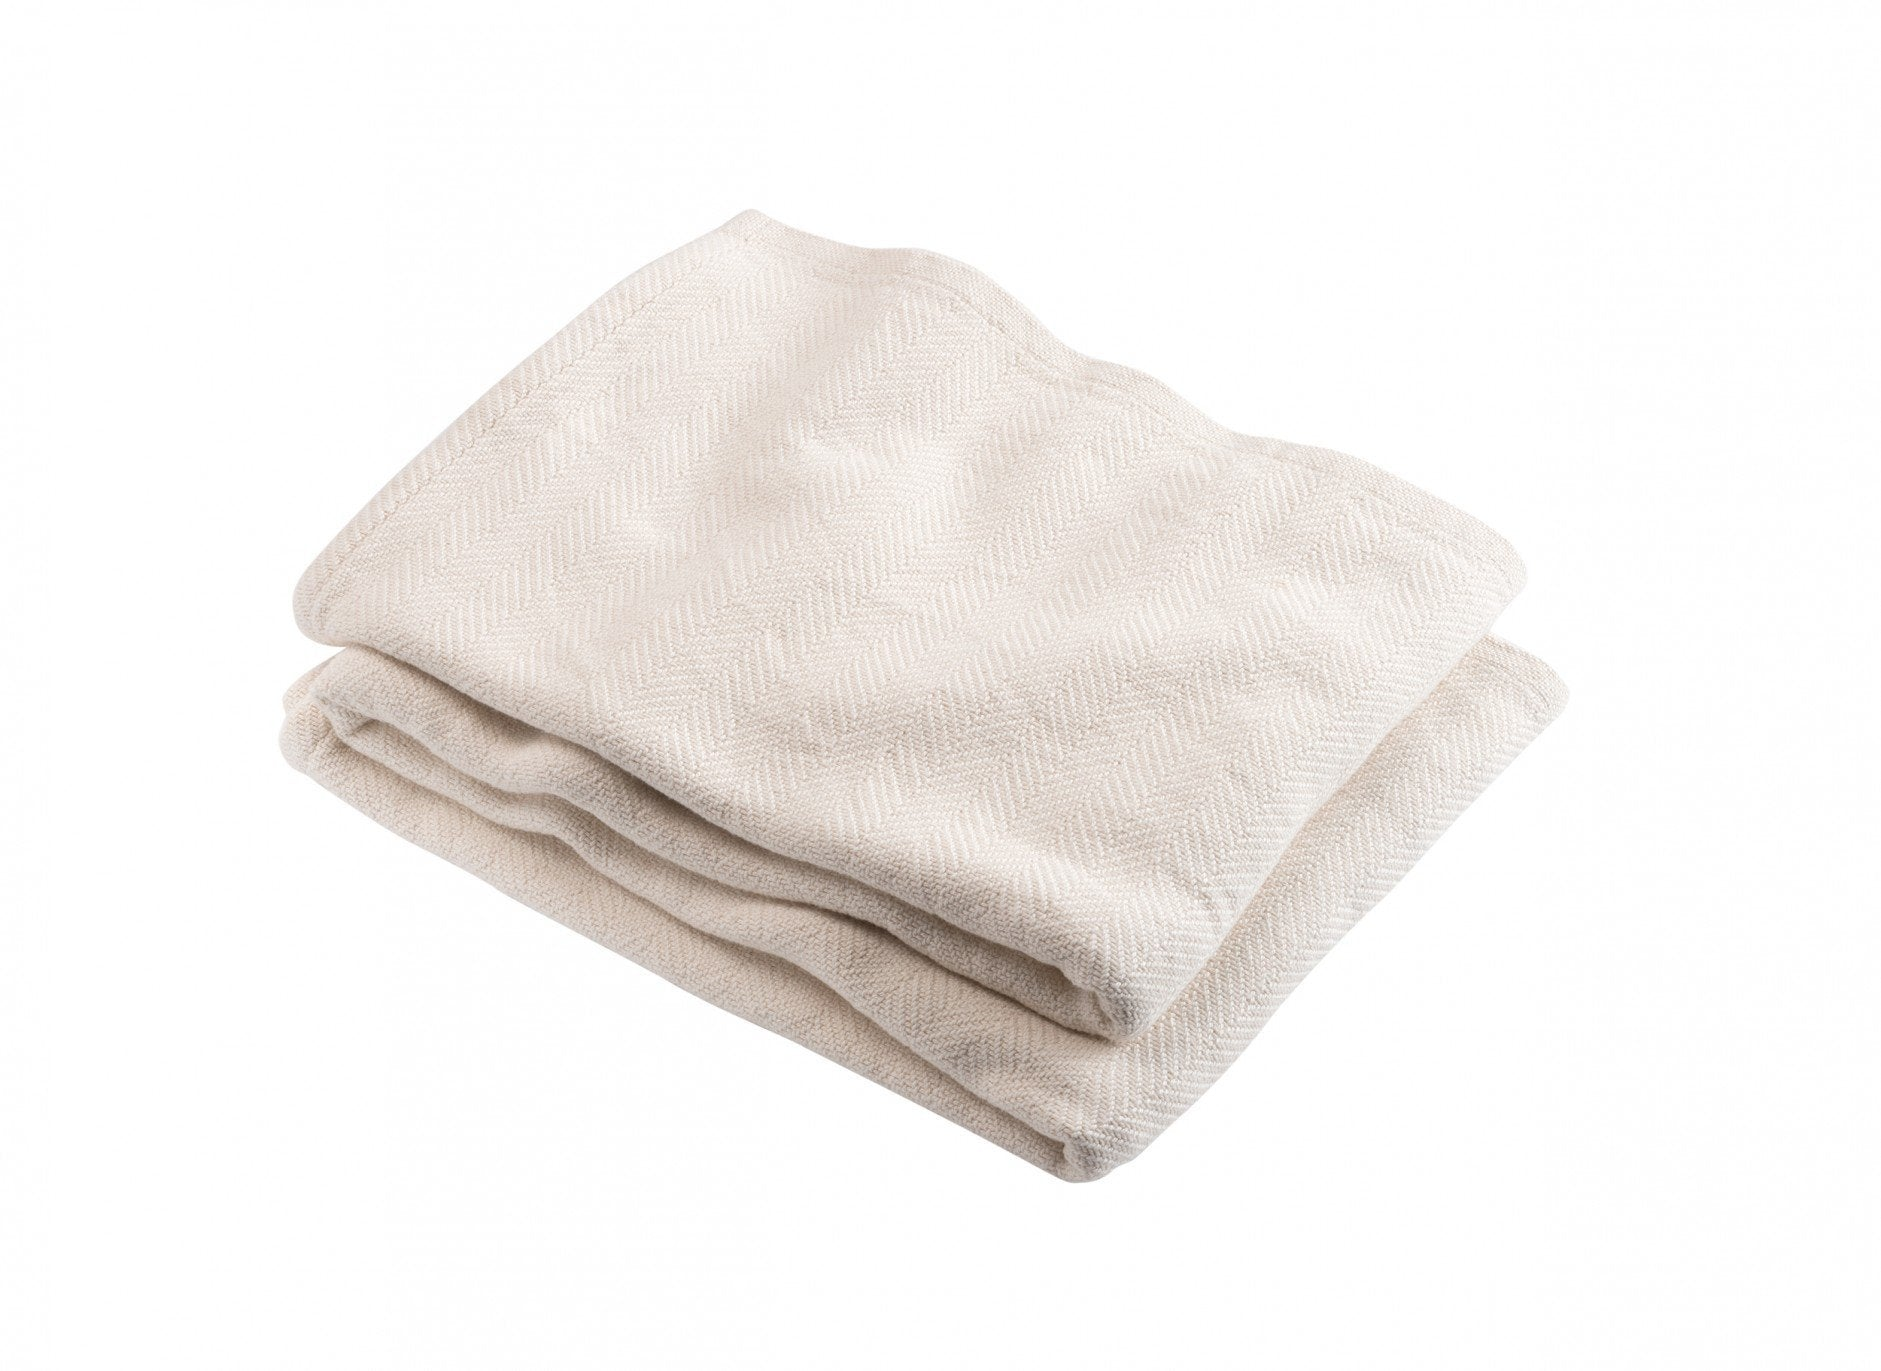 Natural Penobscot Herringbone Cotton Blanket by Brahms Mount | Fig Linens